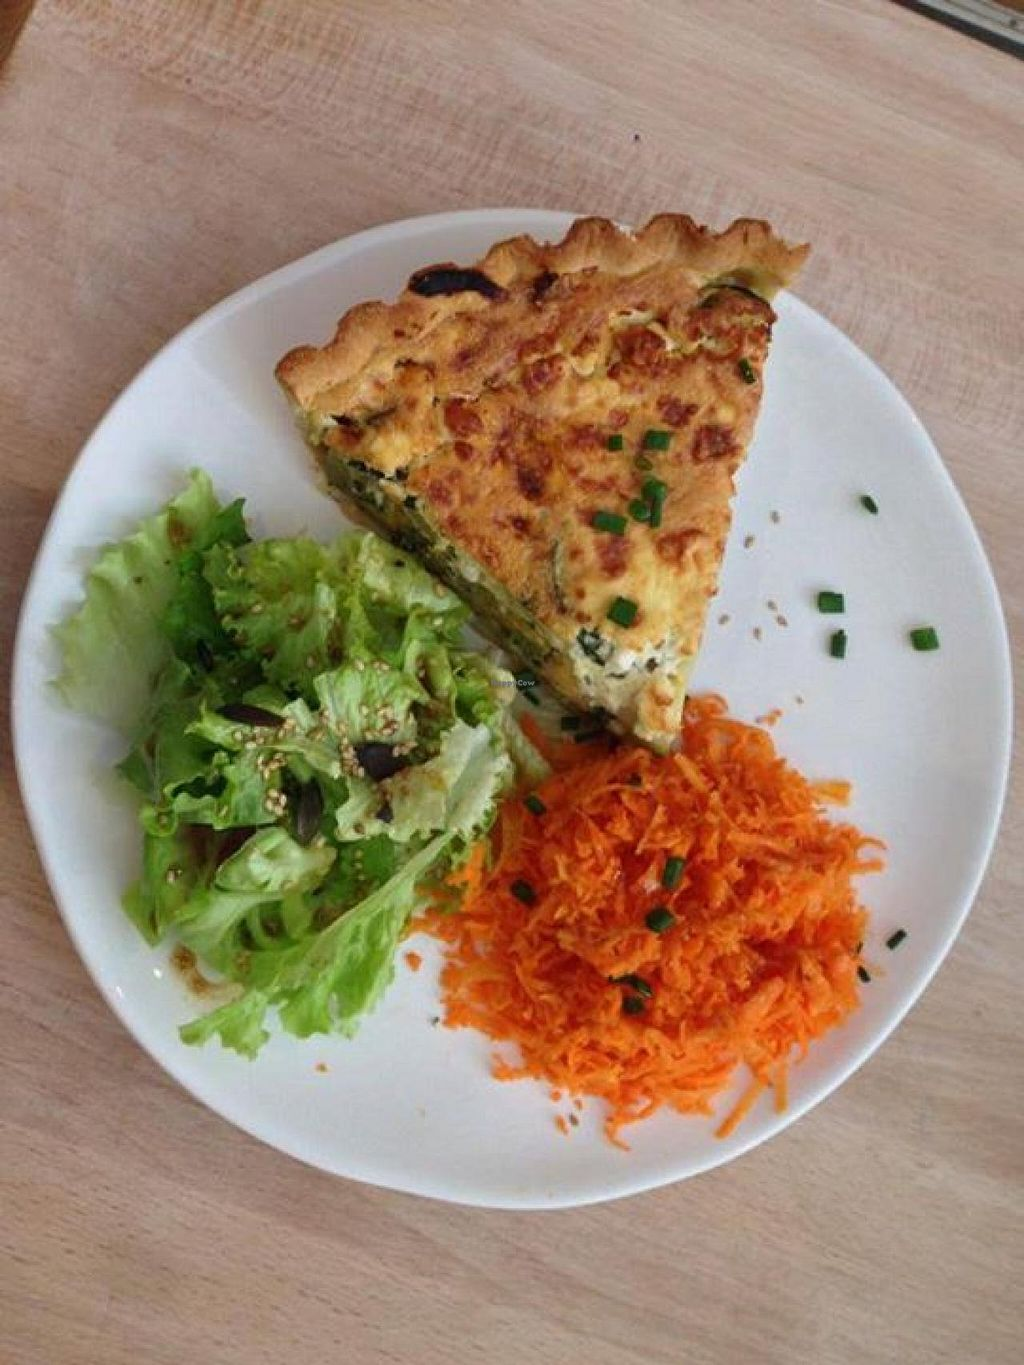 """Photo of Le Comptoir Bio  by <a href=""""/members/profile/community"""">community</a> <br/>vege tart  <br/> September 26, 2014  - <a href='/contact/abuse/image/48639/81217'>Report</a>"""